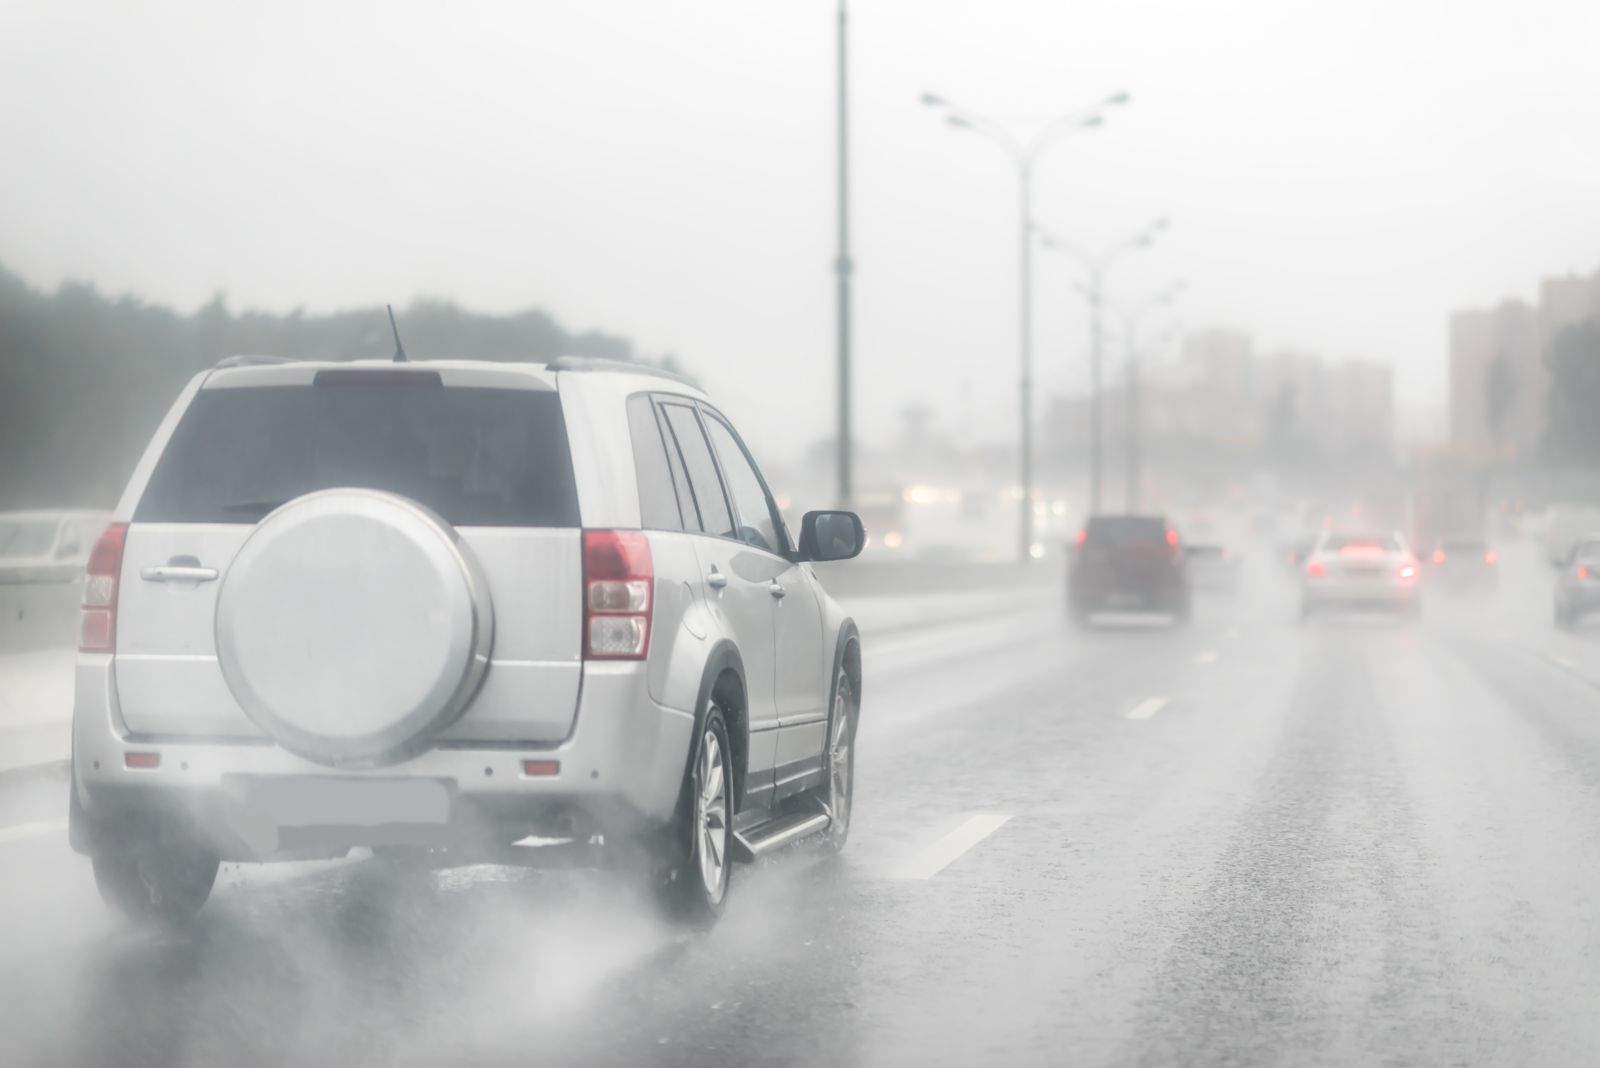 SUV Driving on Wet Road in the Rain